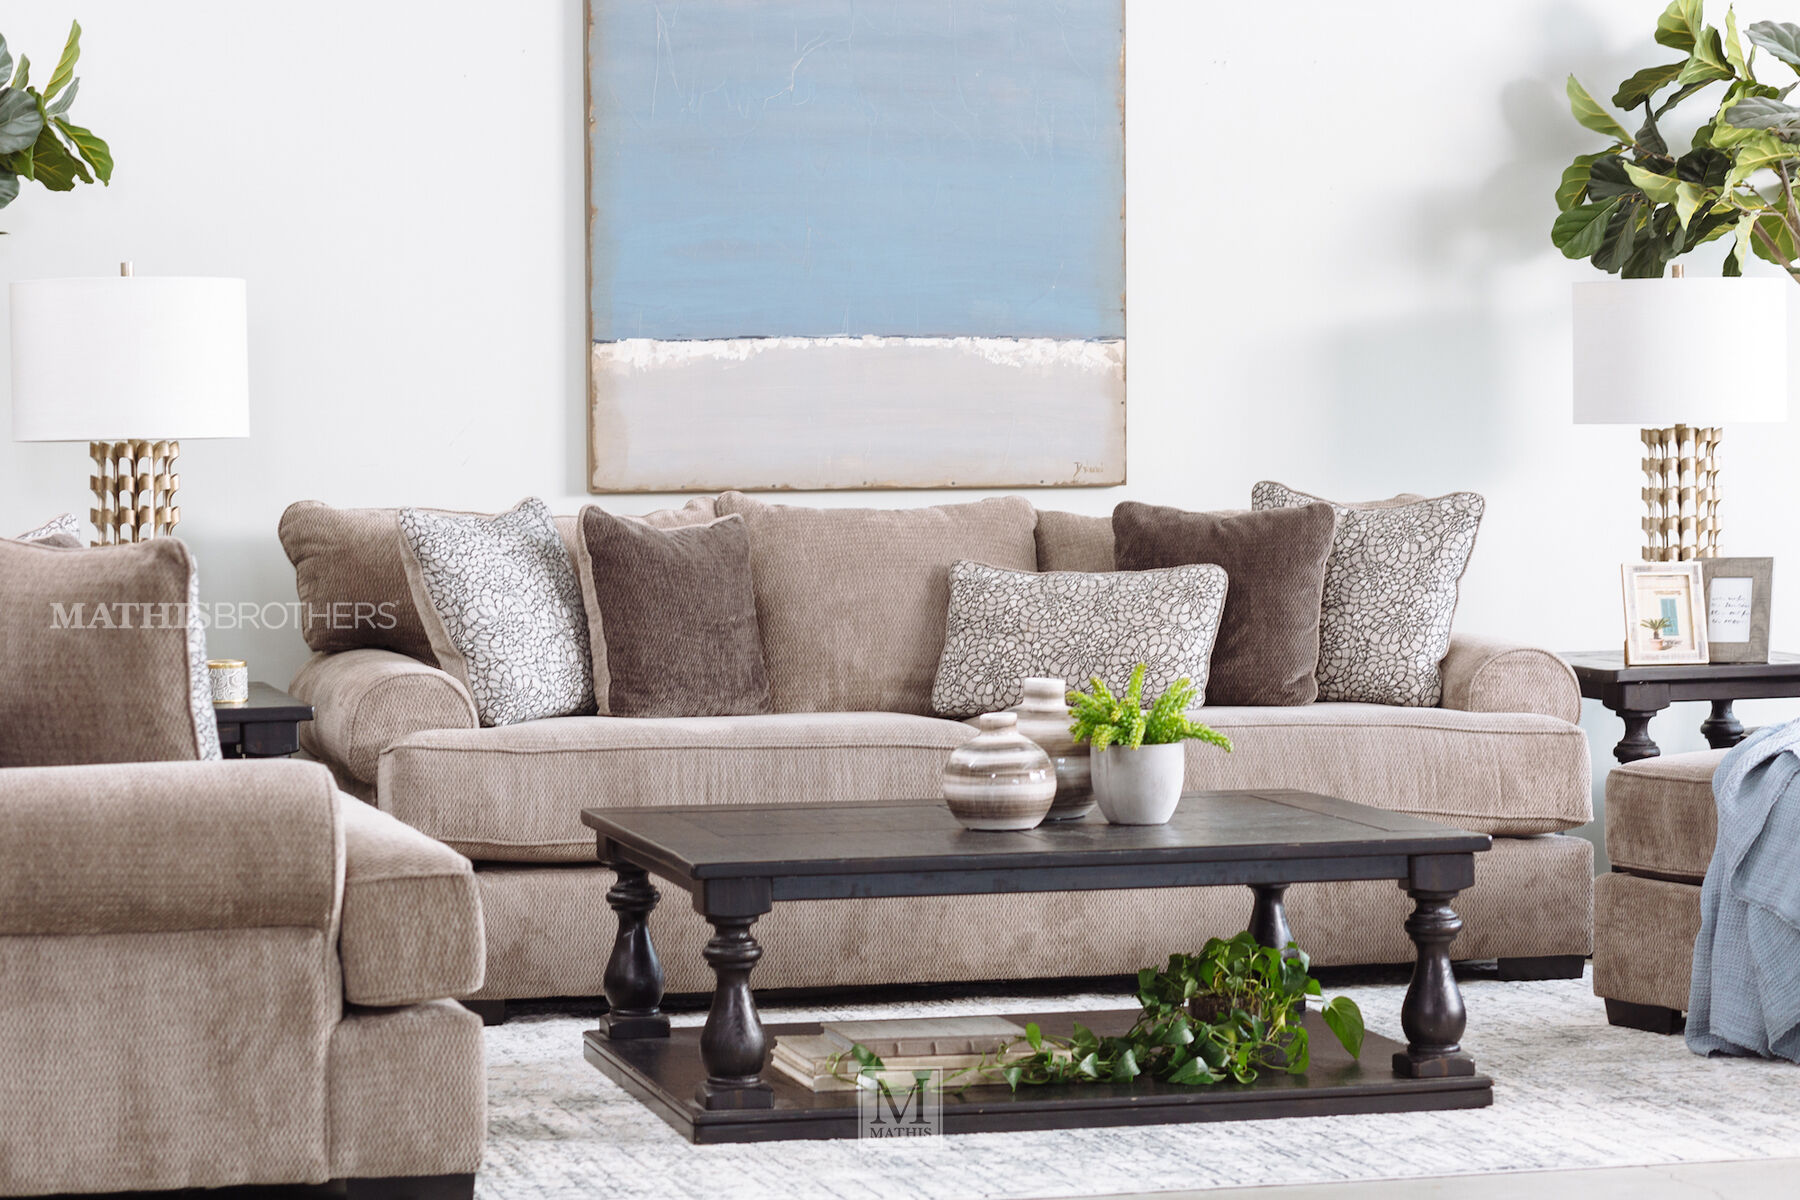 LowProfile 96 Sofa in Gray  Mathis Brothers Furniture